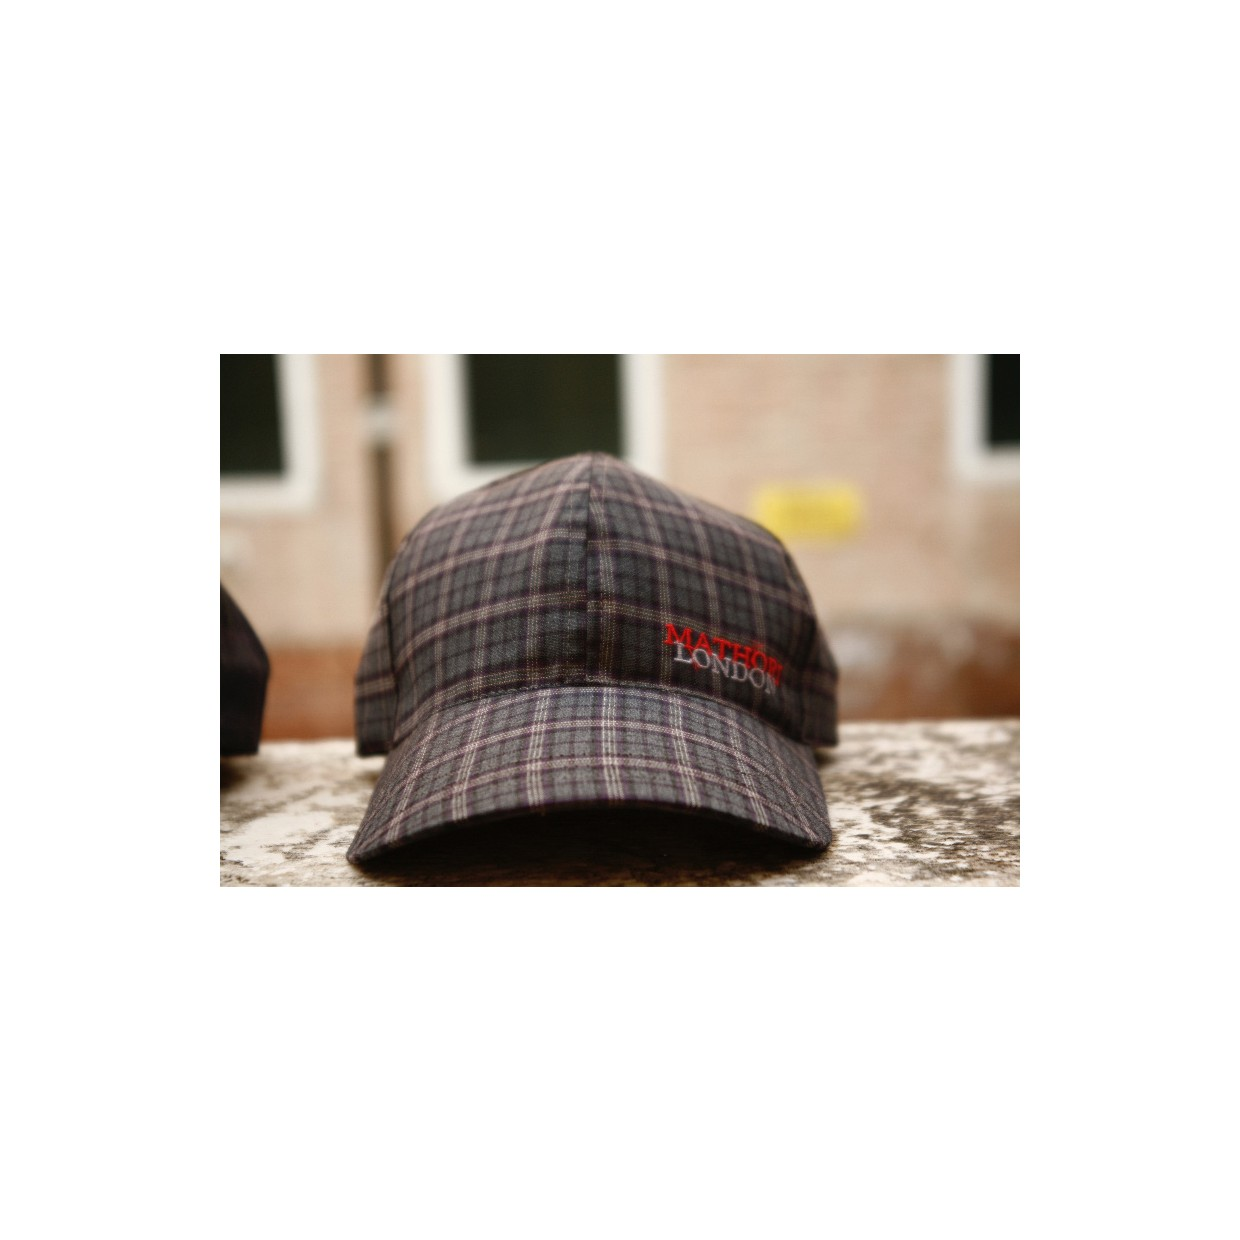 Mathori London - Cap (Limited Edition)